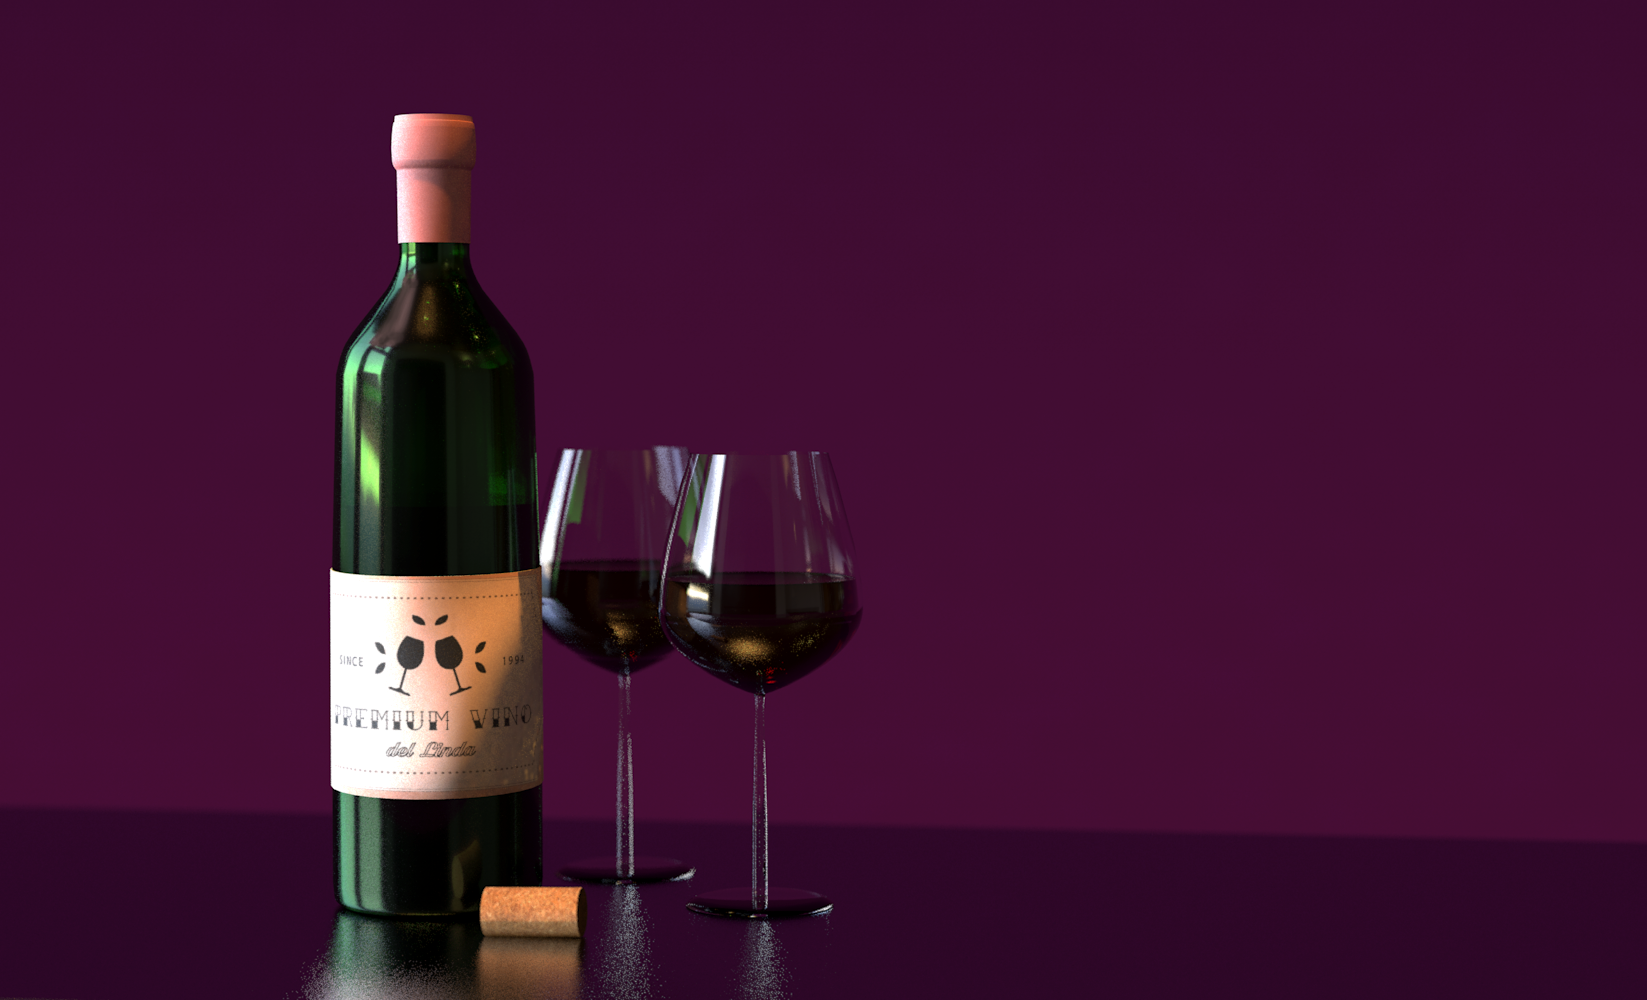 Wine Scene, created using Cinema-4D